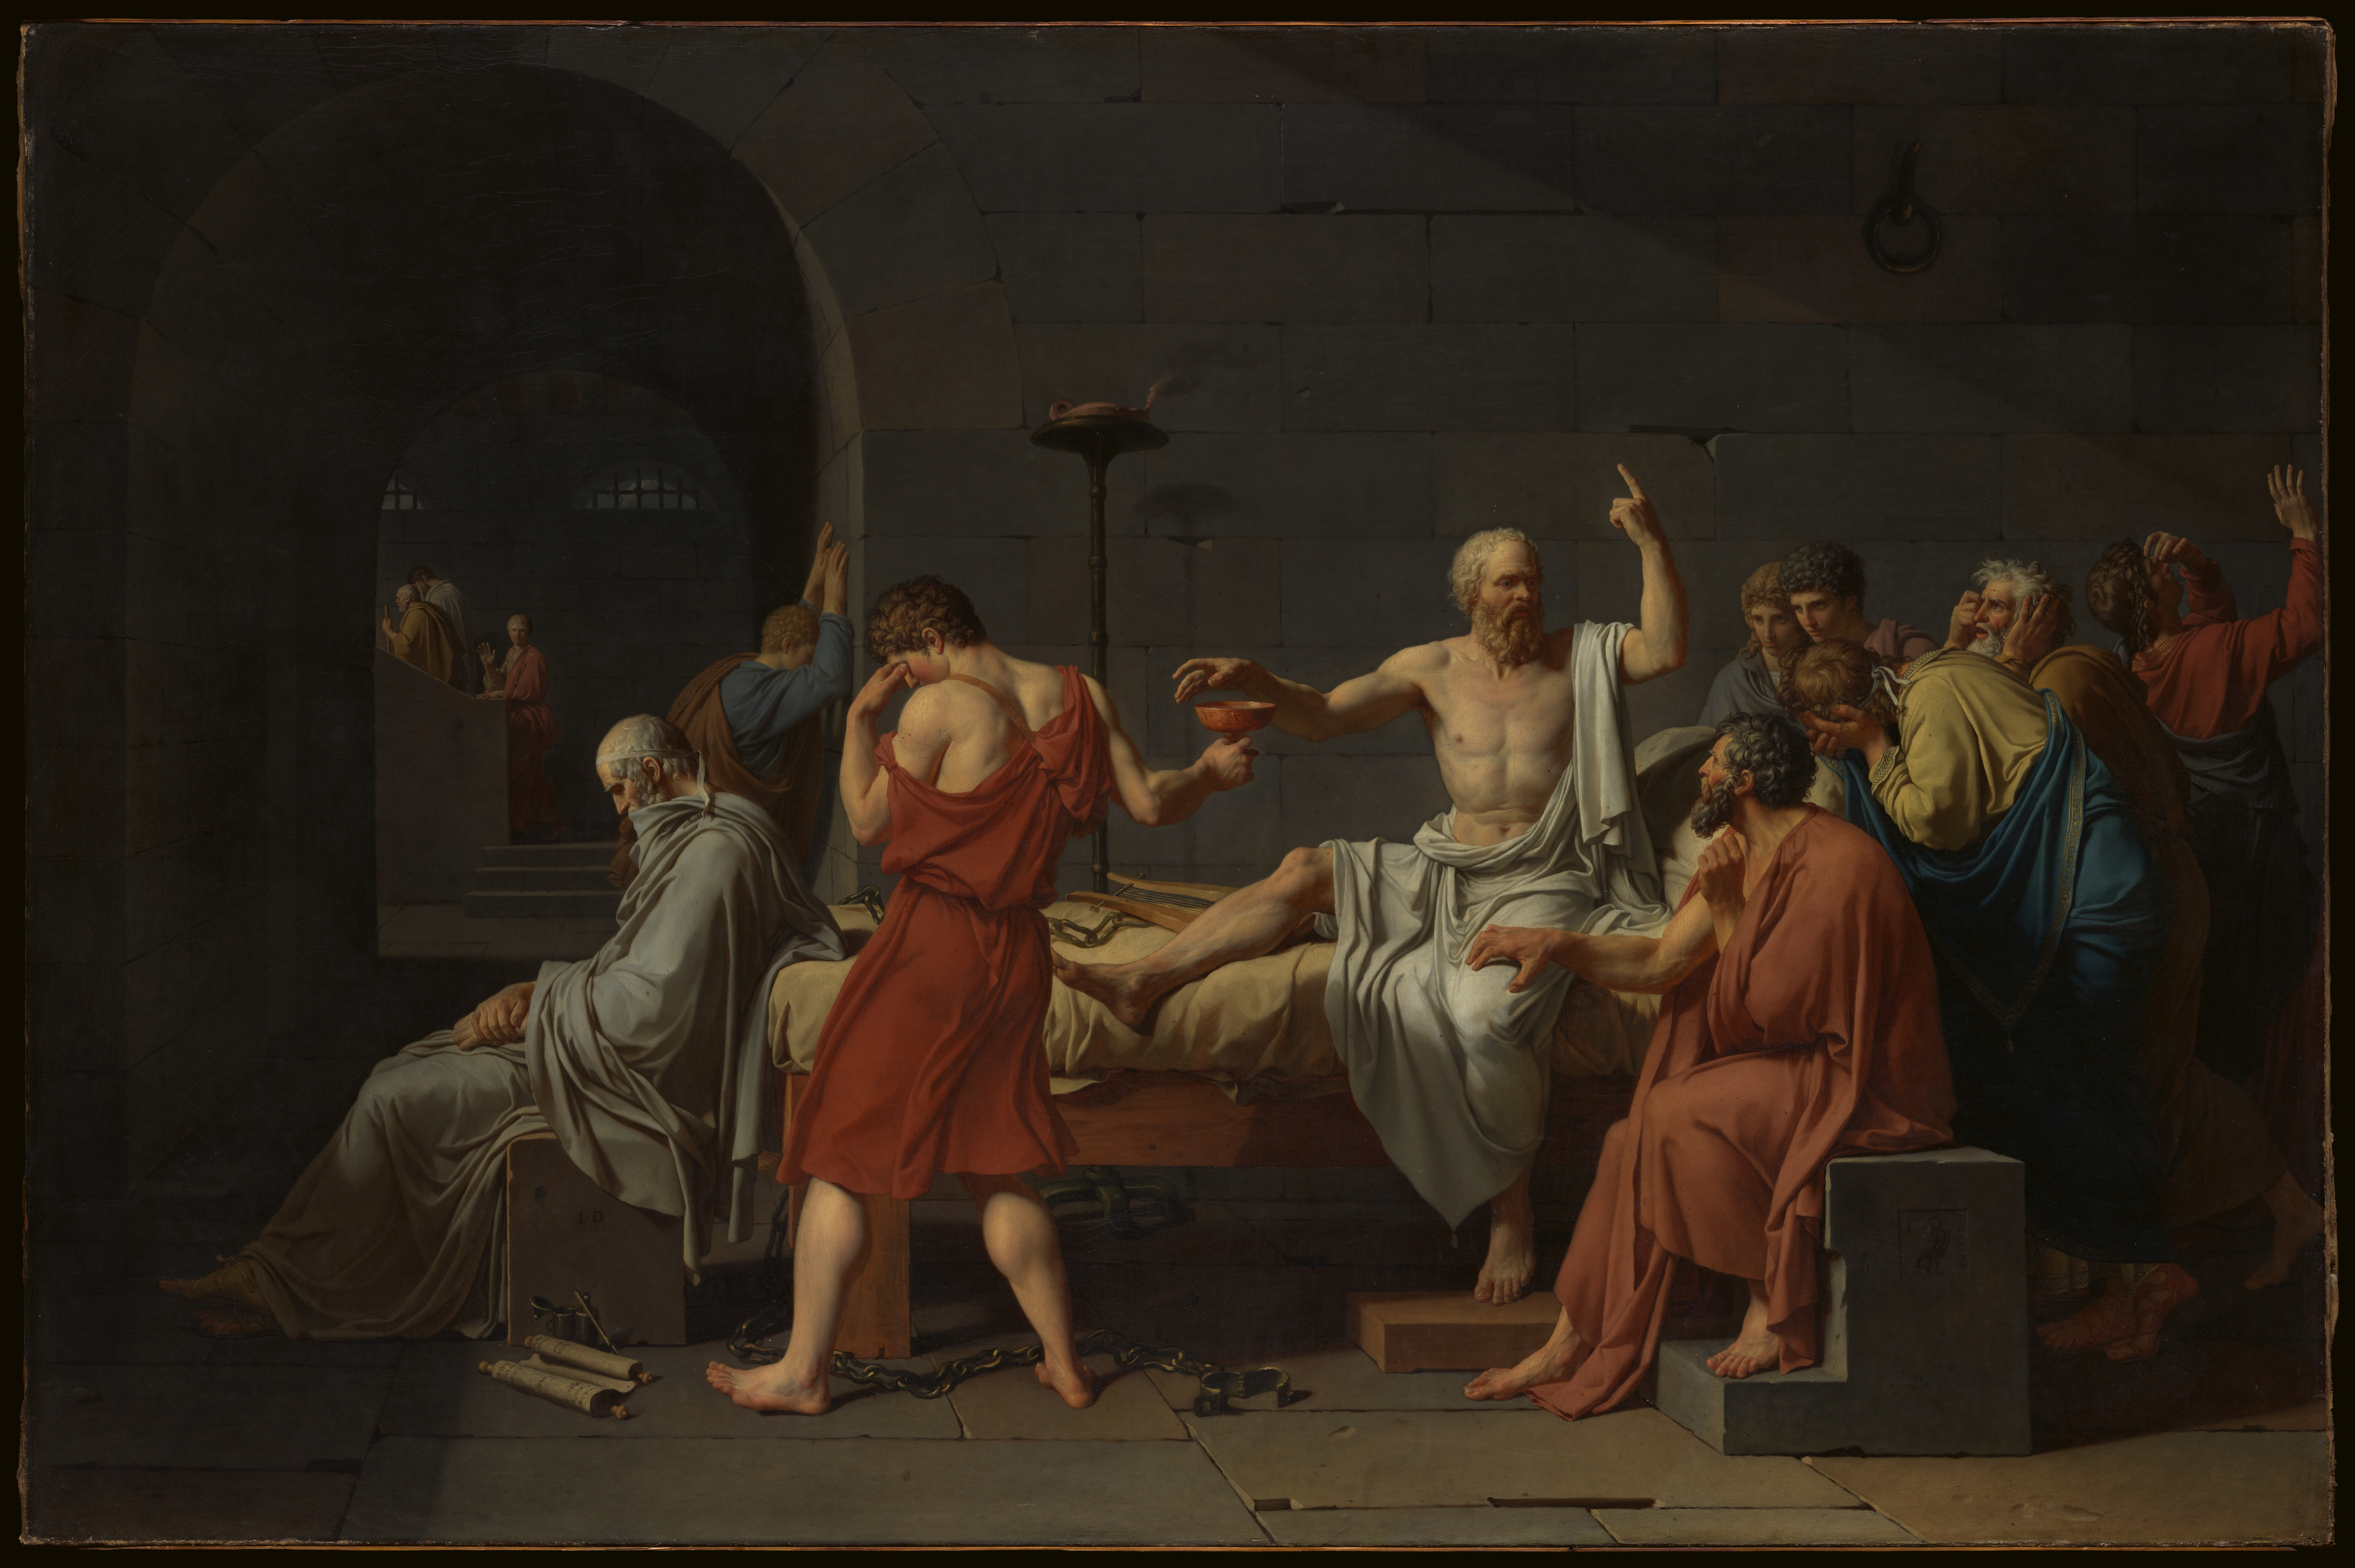 A painting by Jacques Louis David that depicts Socrates preparing to drink poision after being senteced to death. He is surronded by others who seem upset as they listen to him.